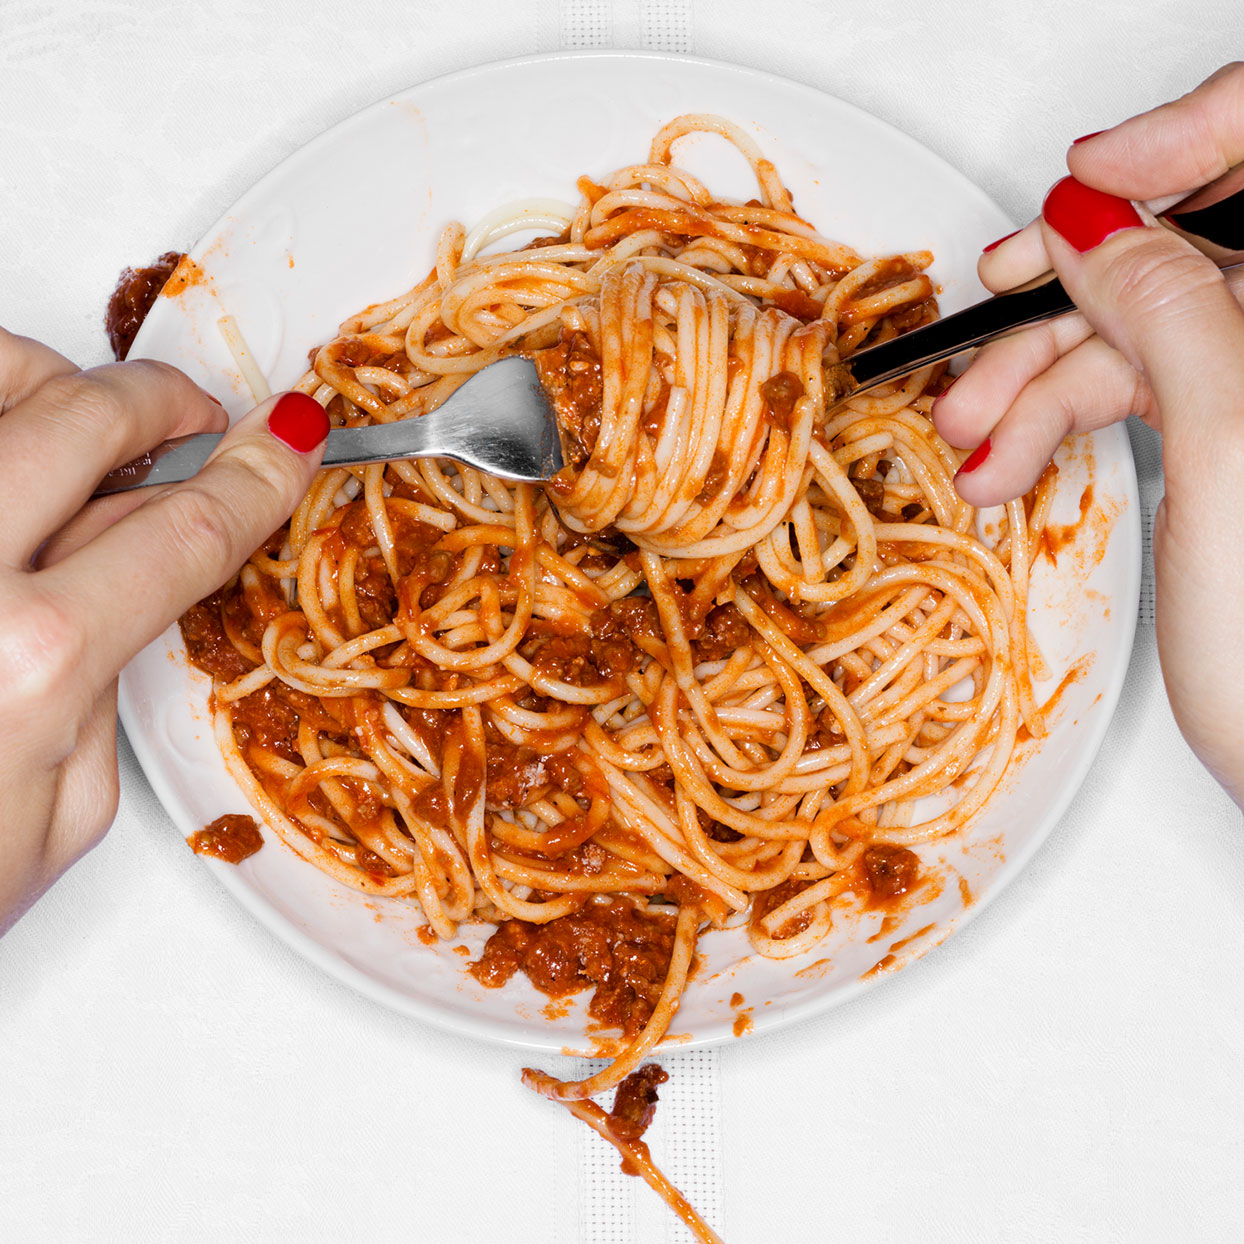 2 hands with utensils eating bowl of spaghetti